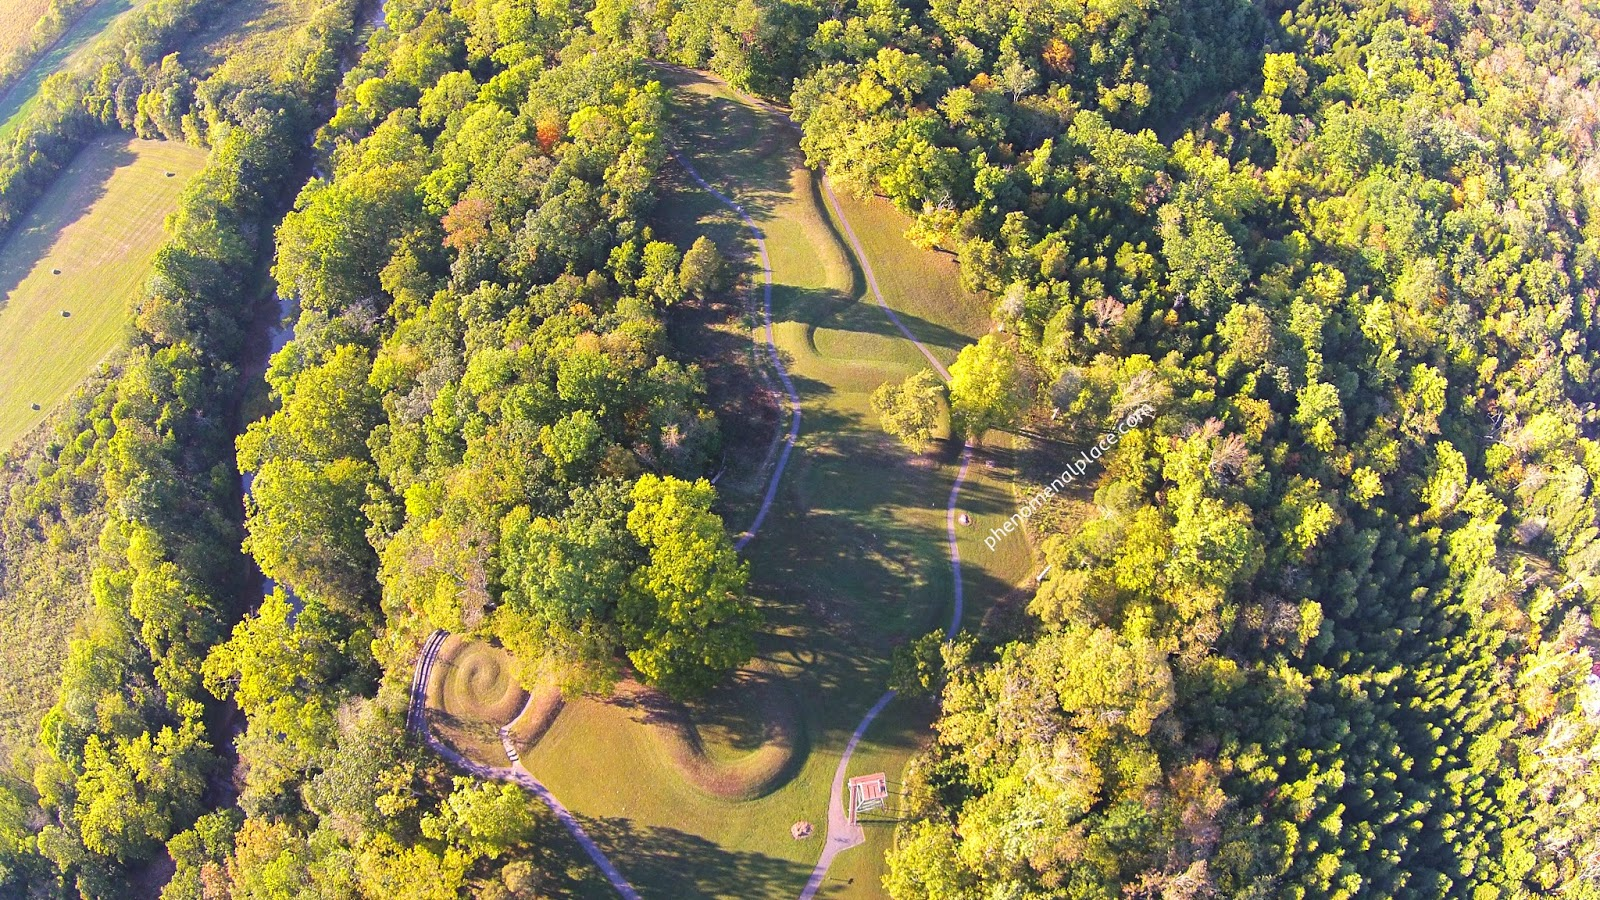 Serpent mound ohio ancient aliens places on the planet you aerial view of serpent mound in peebles ohio buycottarizona